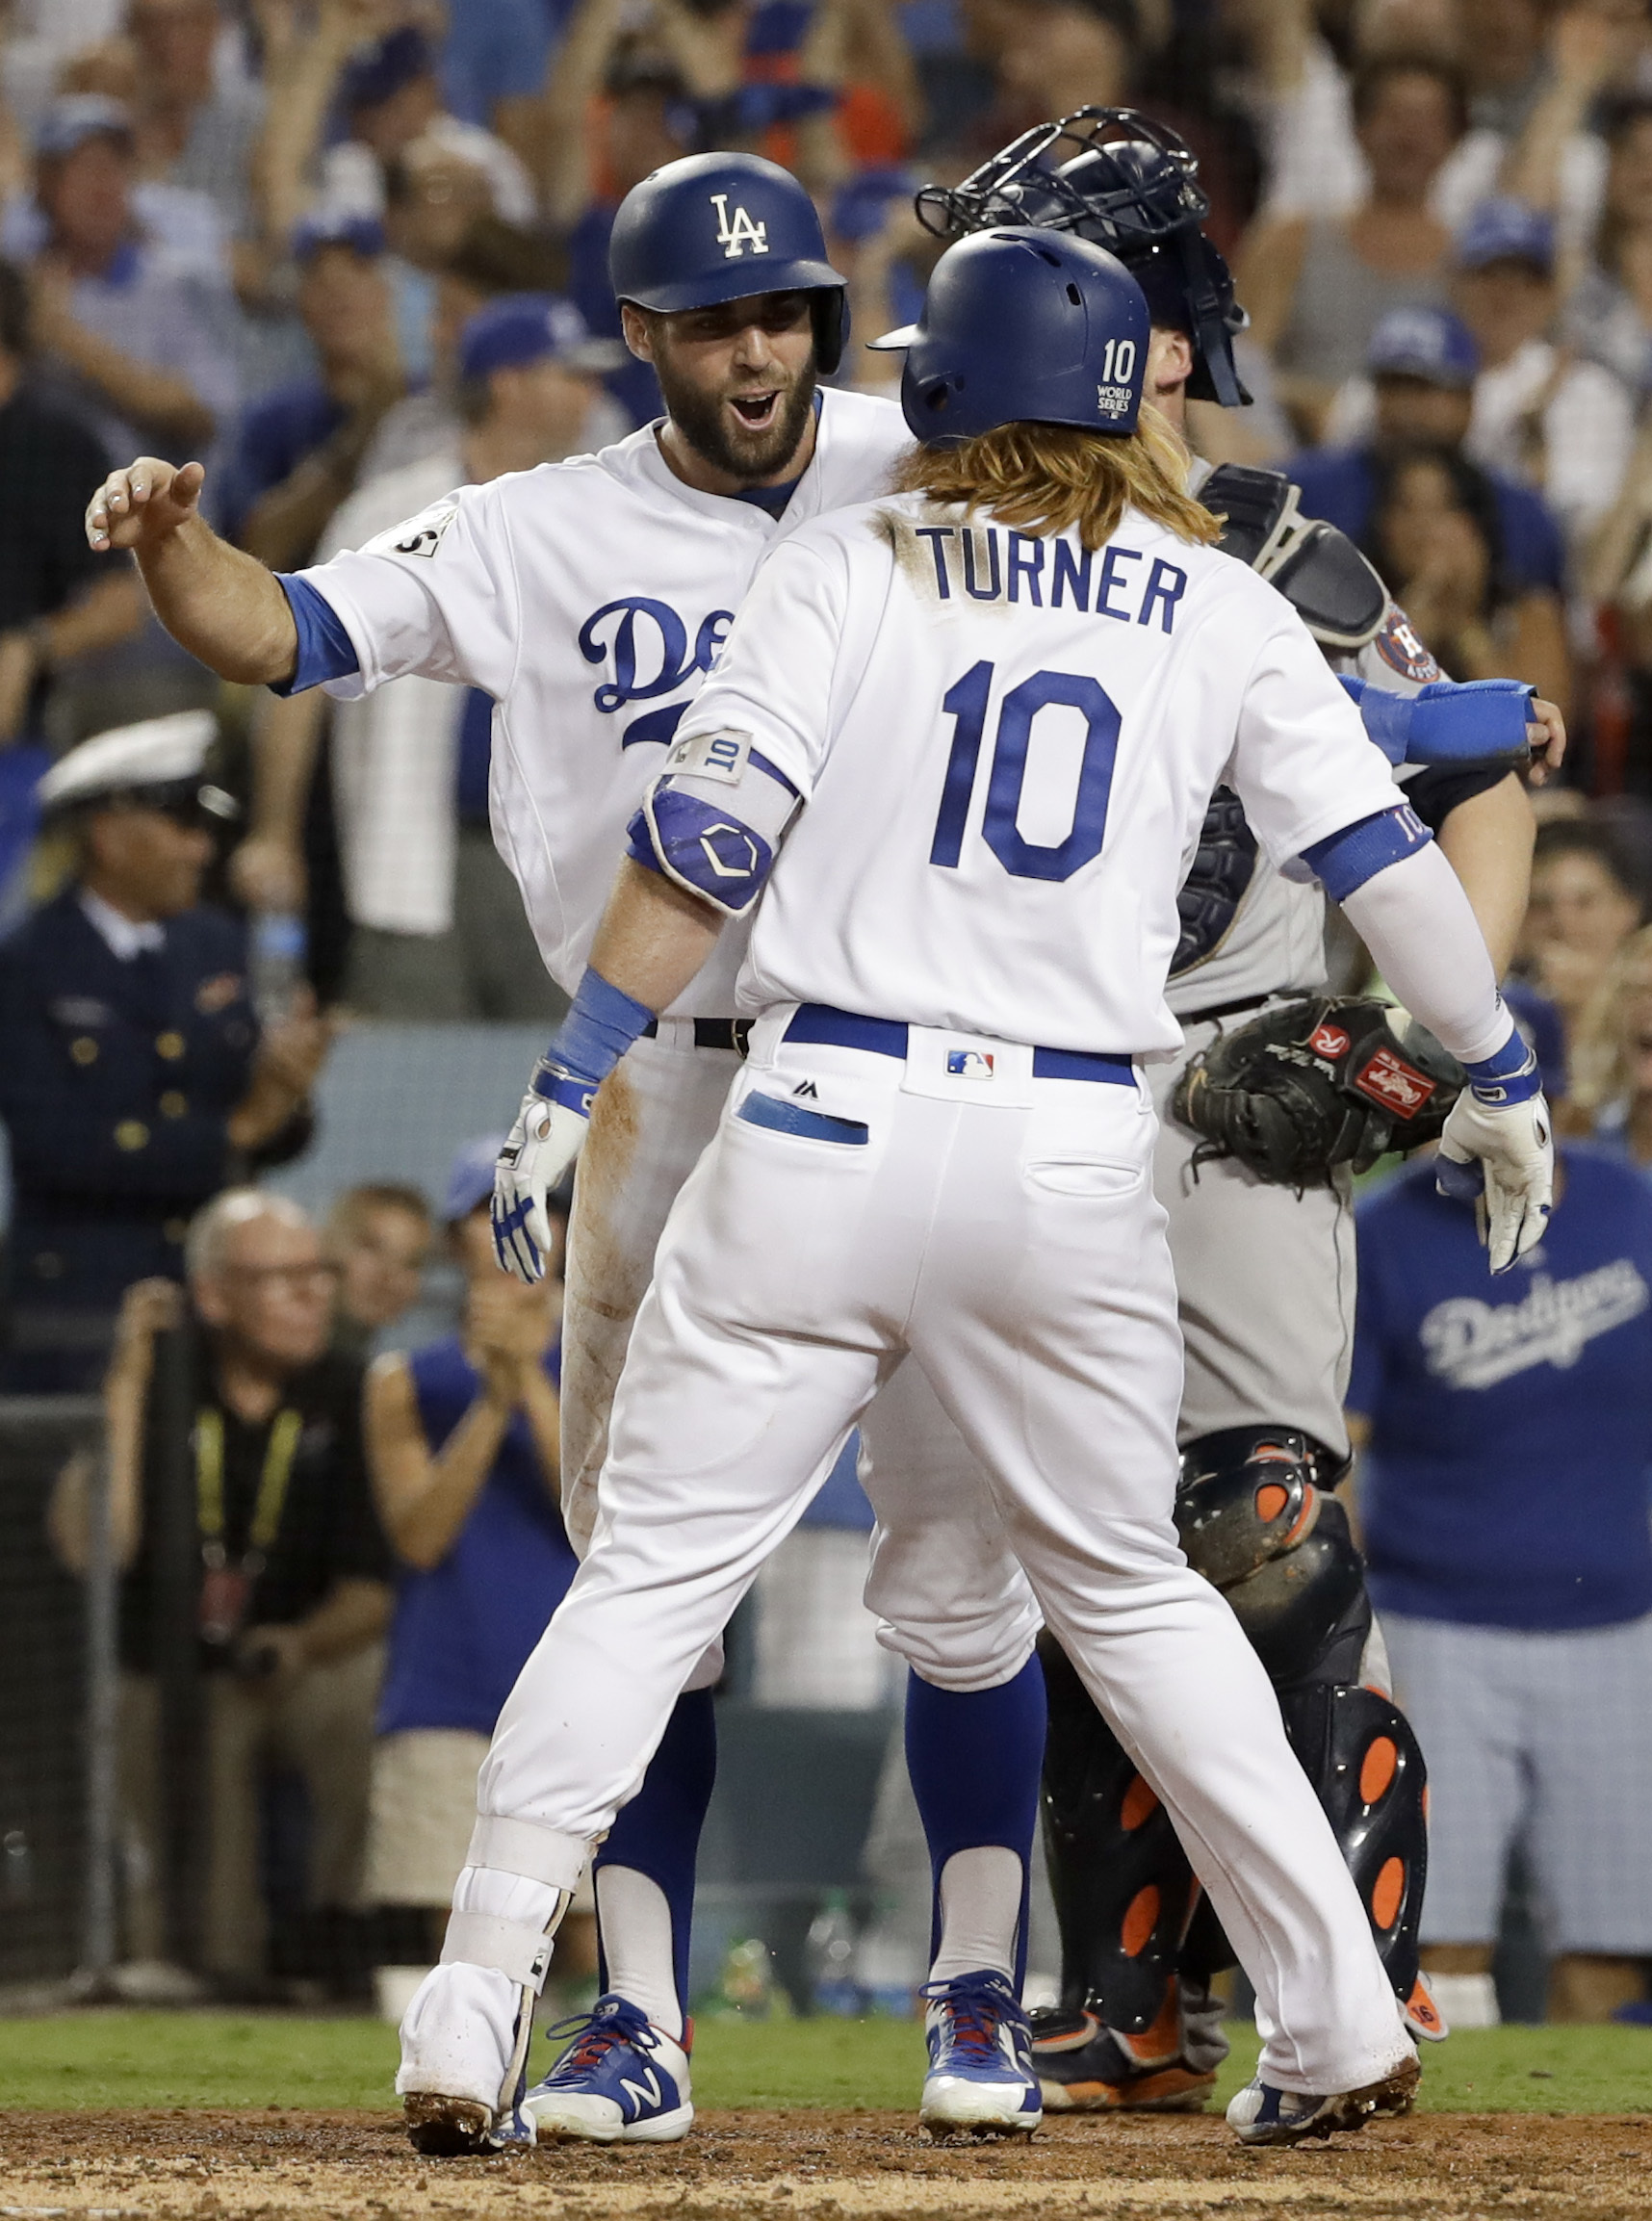 Los Angeles Dodgers' Justin Turner, right, celebrates his two-run home run with Chris Taylor against the Houston Astros during the sixth inning of Game 1 of baseball's World Series Tuesday, Oct. 24, 2017, in Los Angeles.(AP Photo/Matt Slocum)